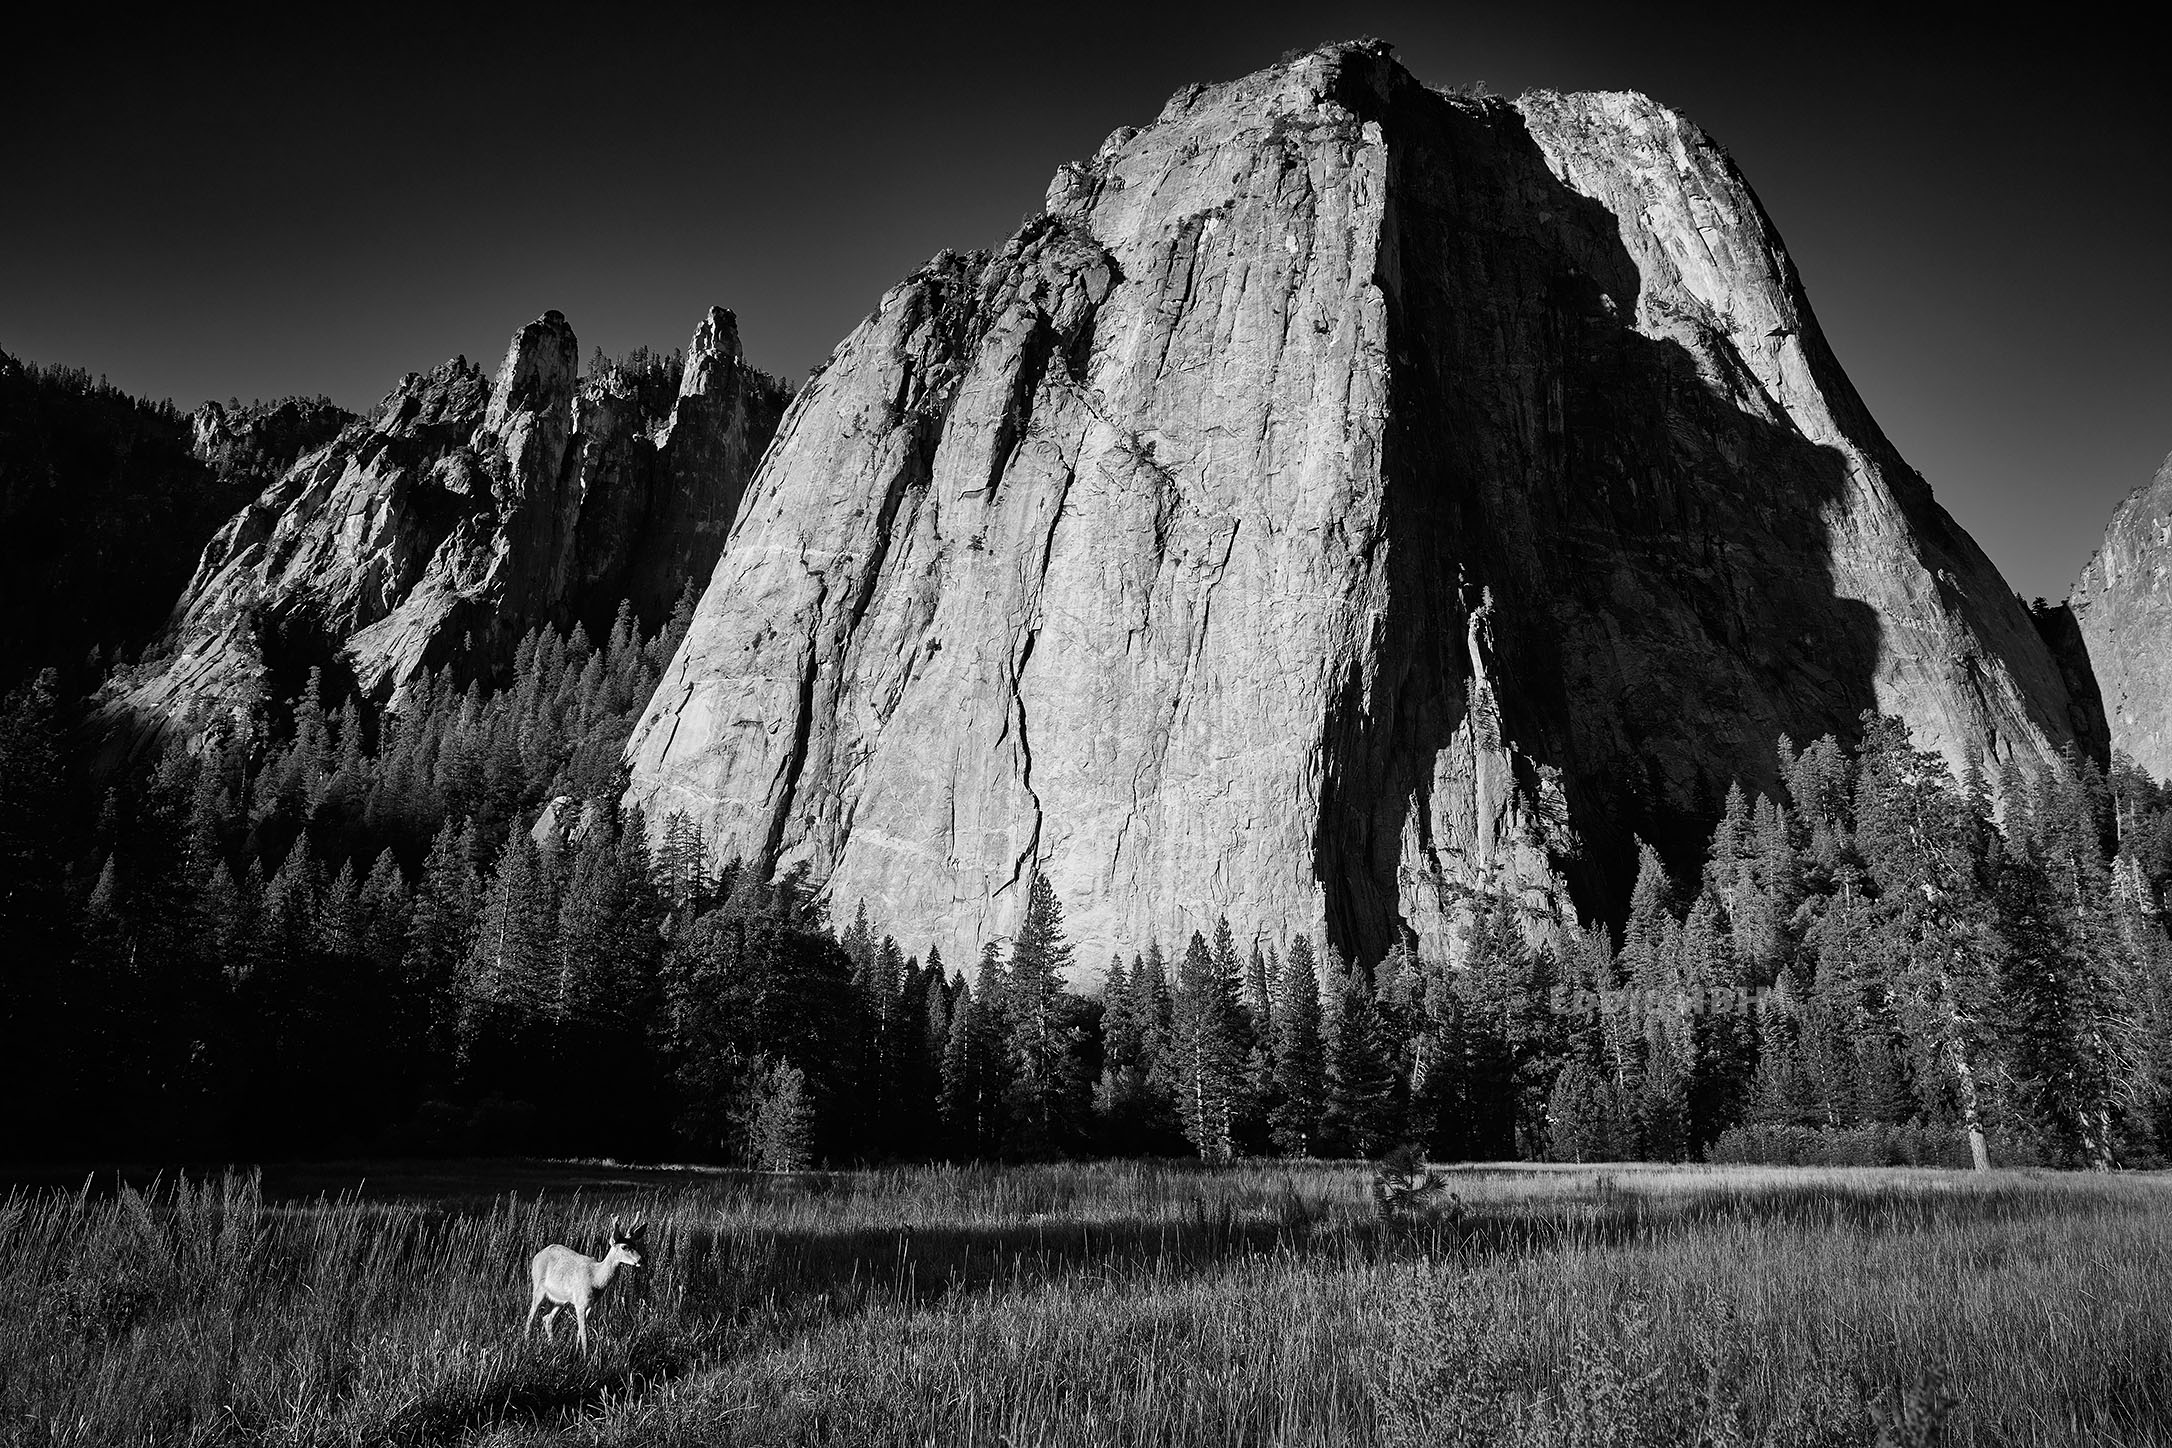 The Meadows in Yosemite National Park